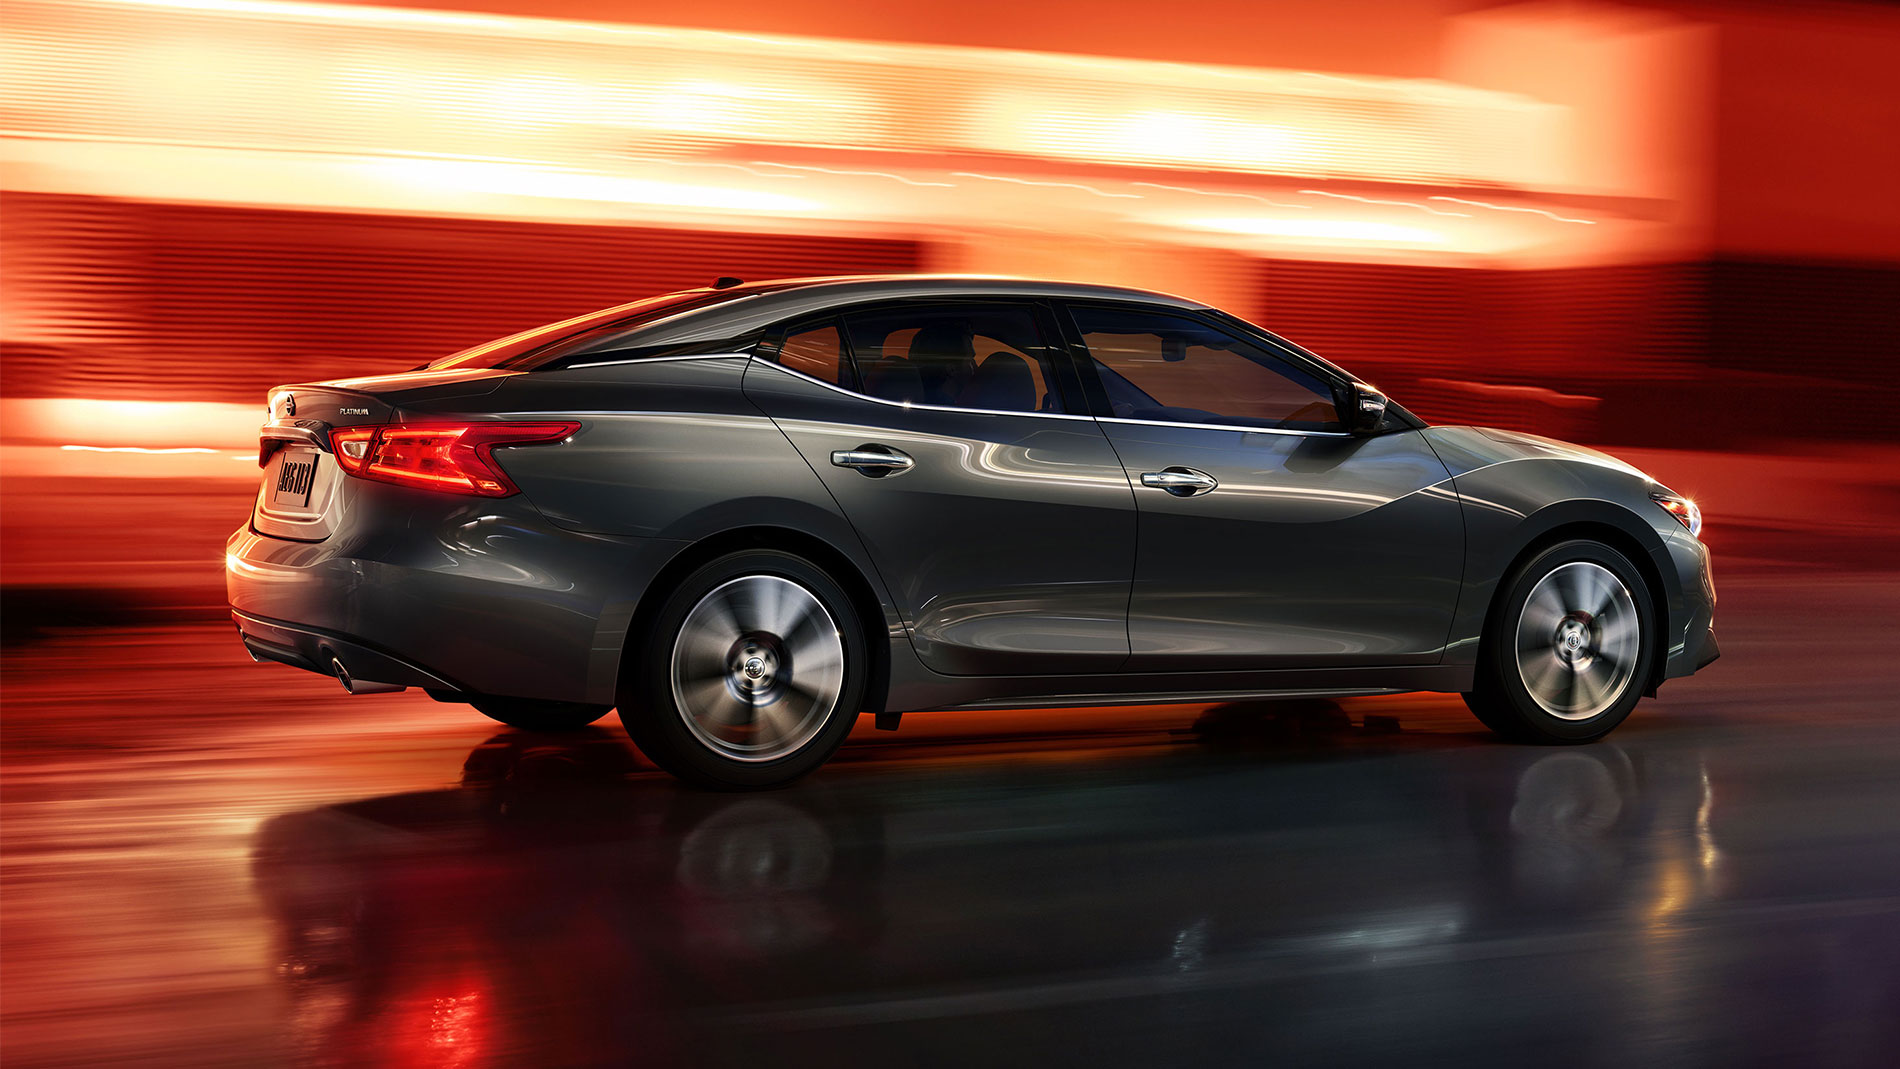 New Nissan Maxima Lease Offers and Best Prices | Quirk Nissan